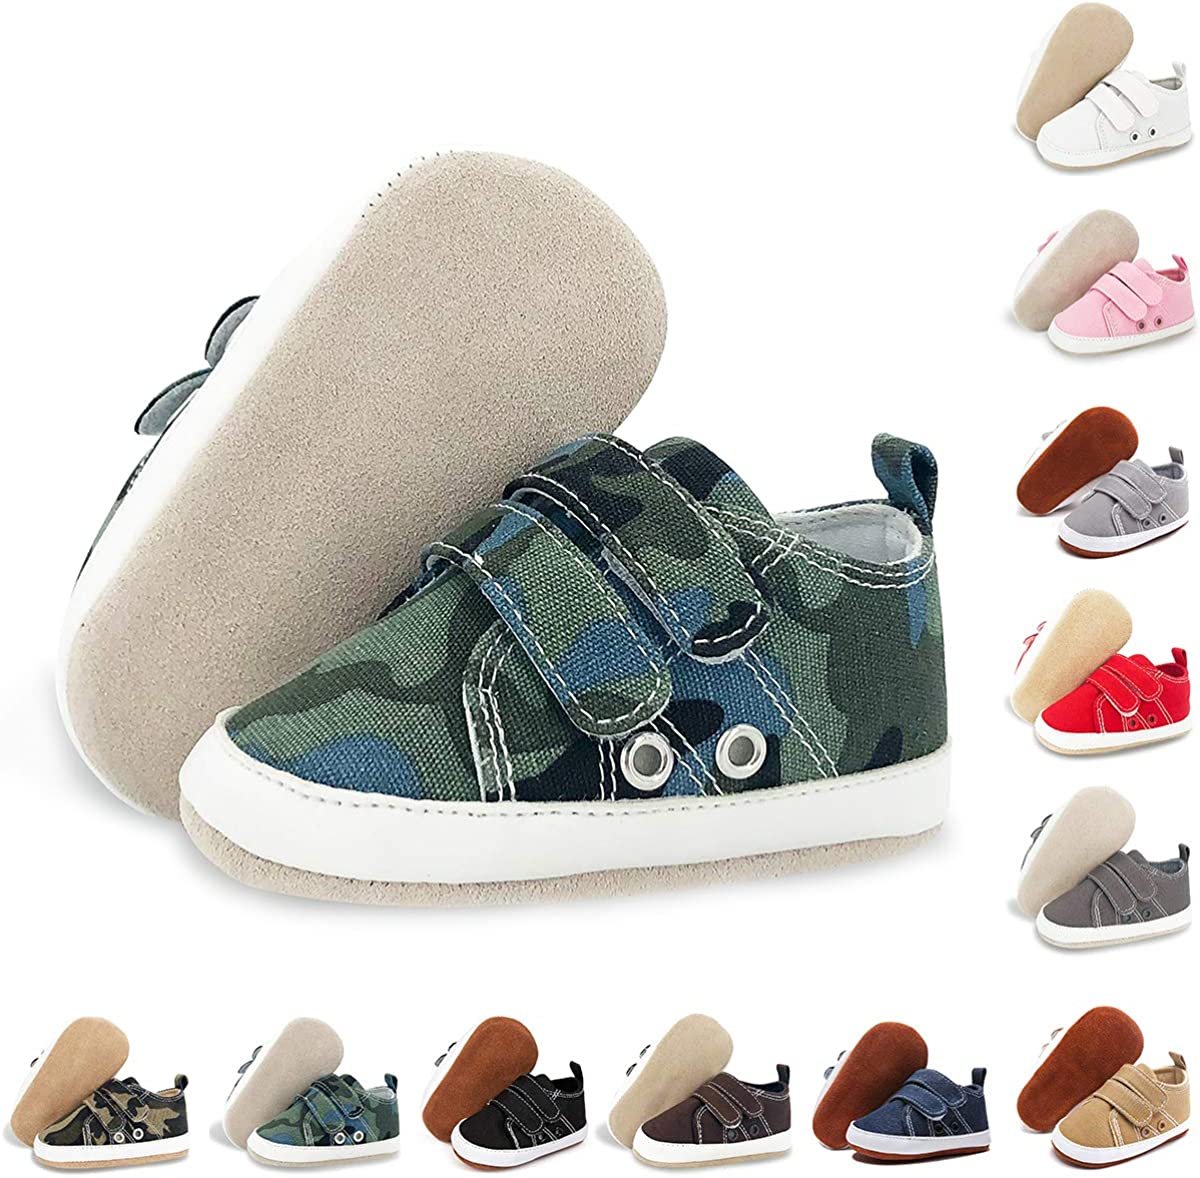 BENHERO Baby Boys Girls Shoes Canvas Infant Sneakers 100/% Leather Anti-Slip Buttom Baby Walker Crib Shoes